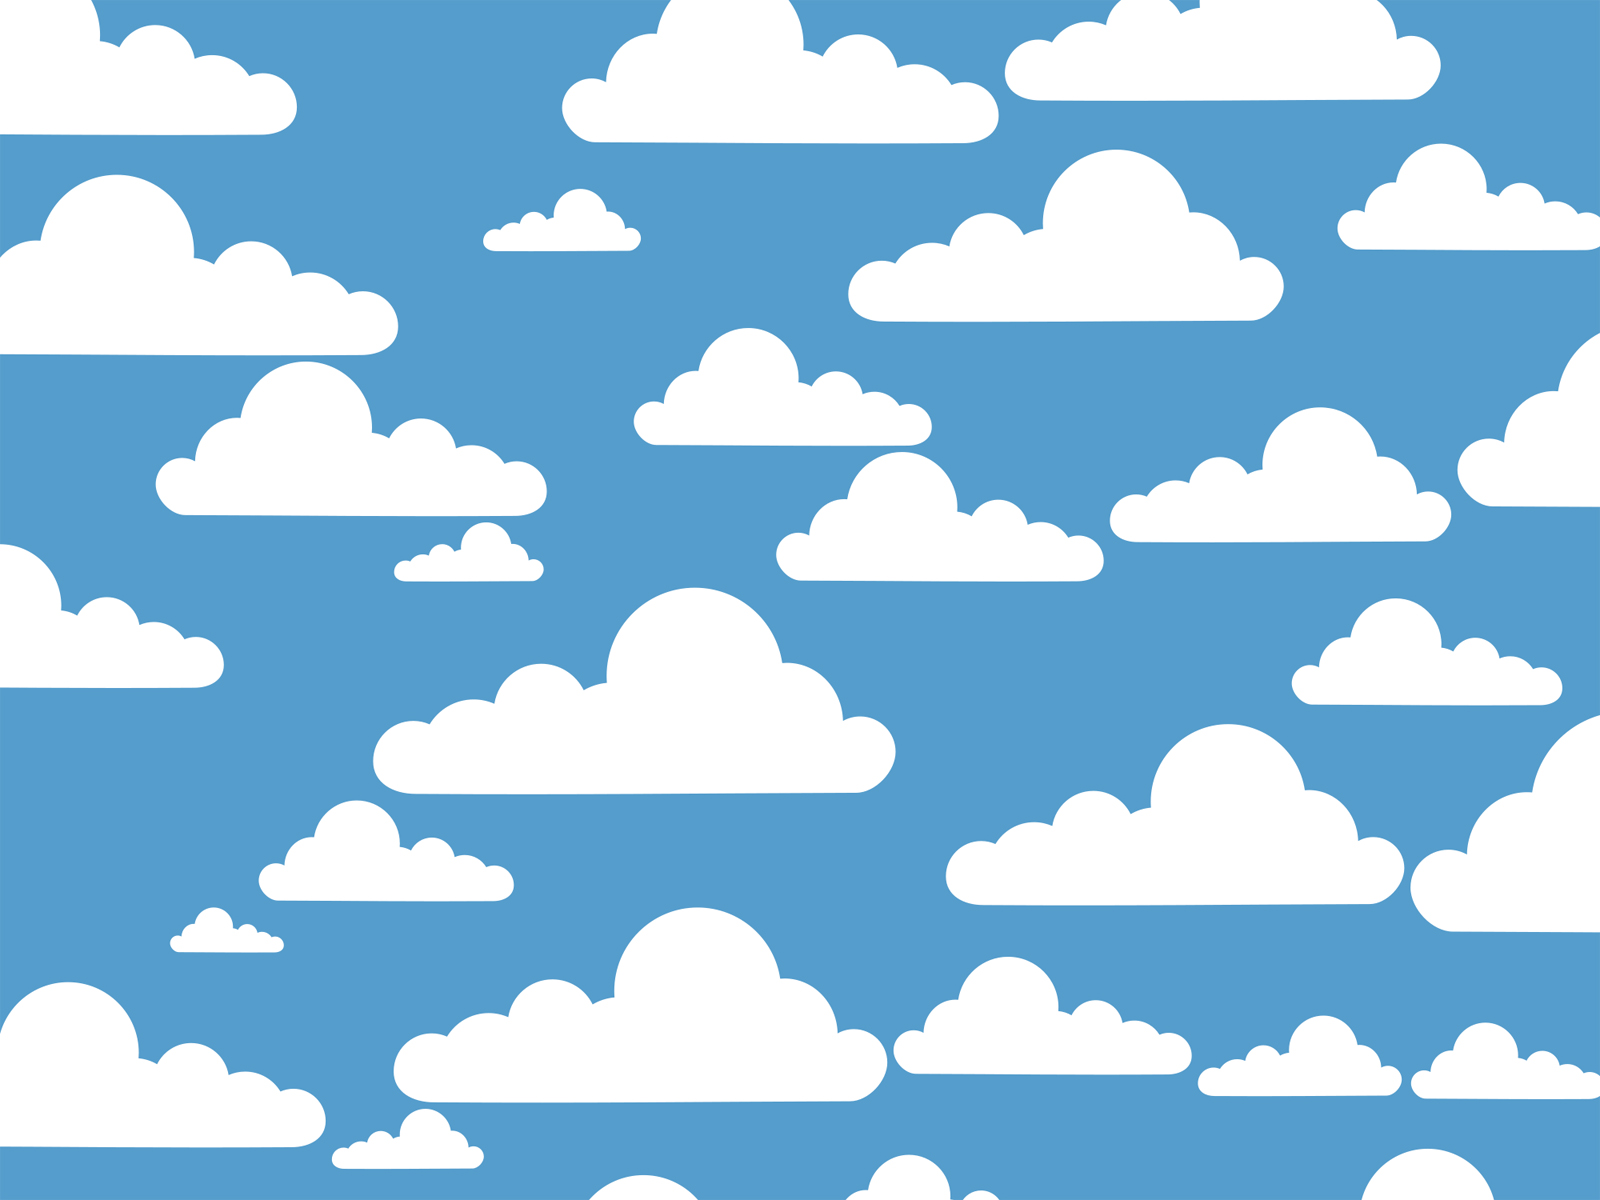 simple clouds template backgrounds blue nature white